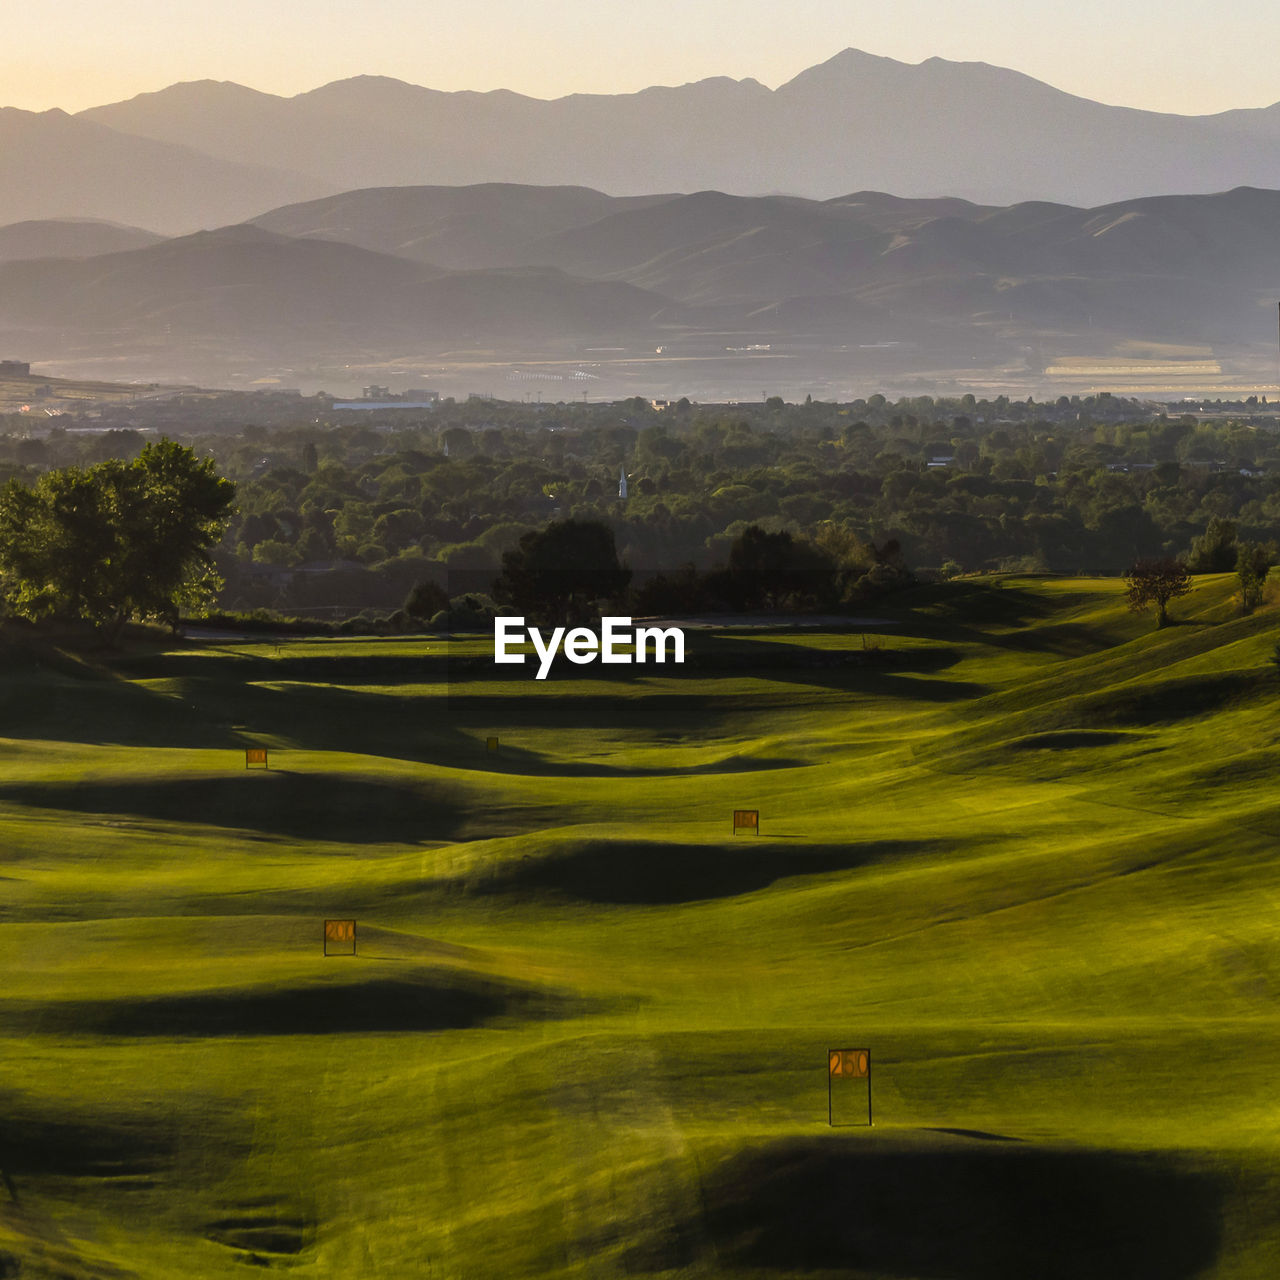 scenics - nature, green color, mountain, beauty in nature, golf course, landscape, plant, environment, tranquility, tranquil scene, golf, grass, no people, nature, sky, day, non-urban scene, tree, activity, sport, mountain range, green - golf course, outdoors, rolling landscape